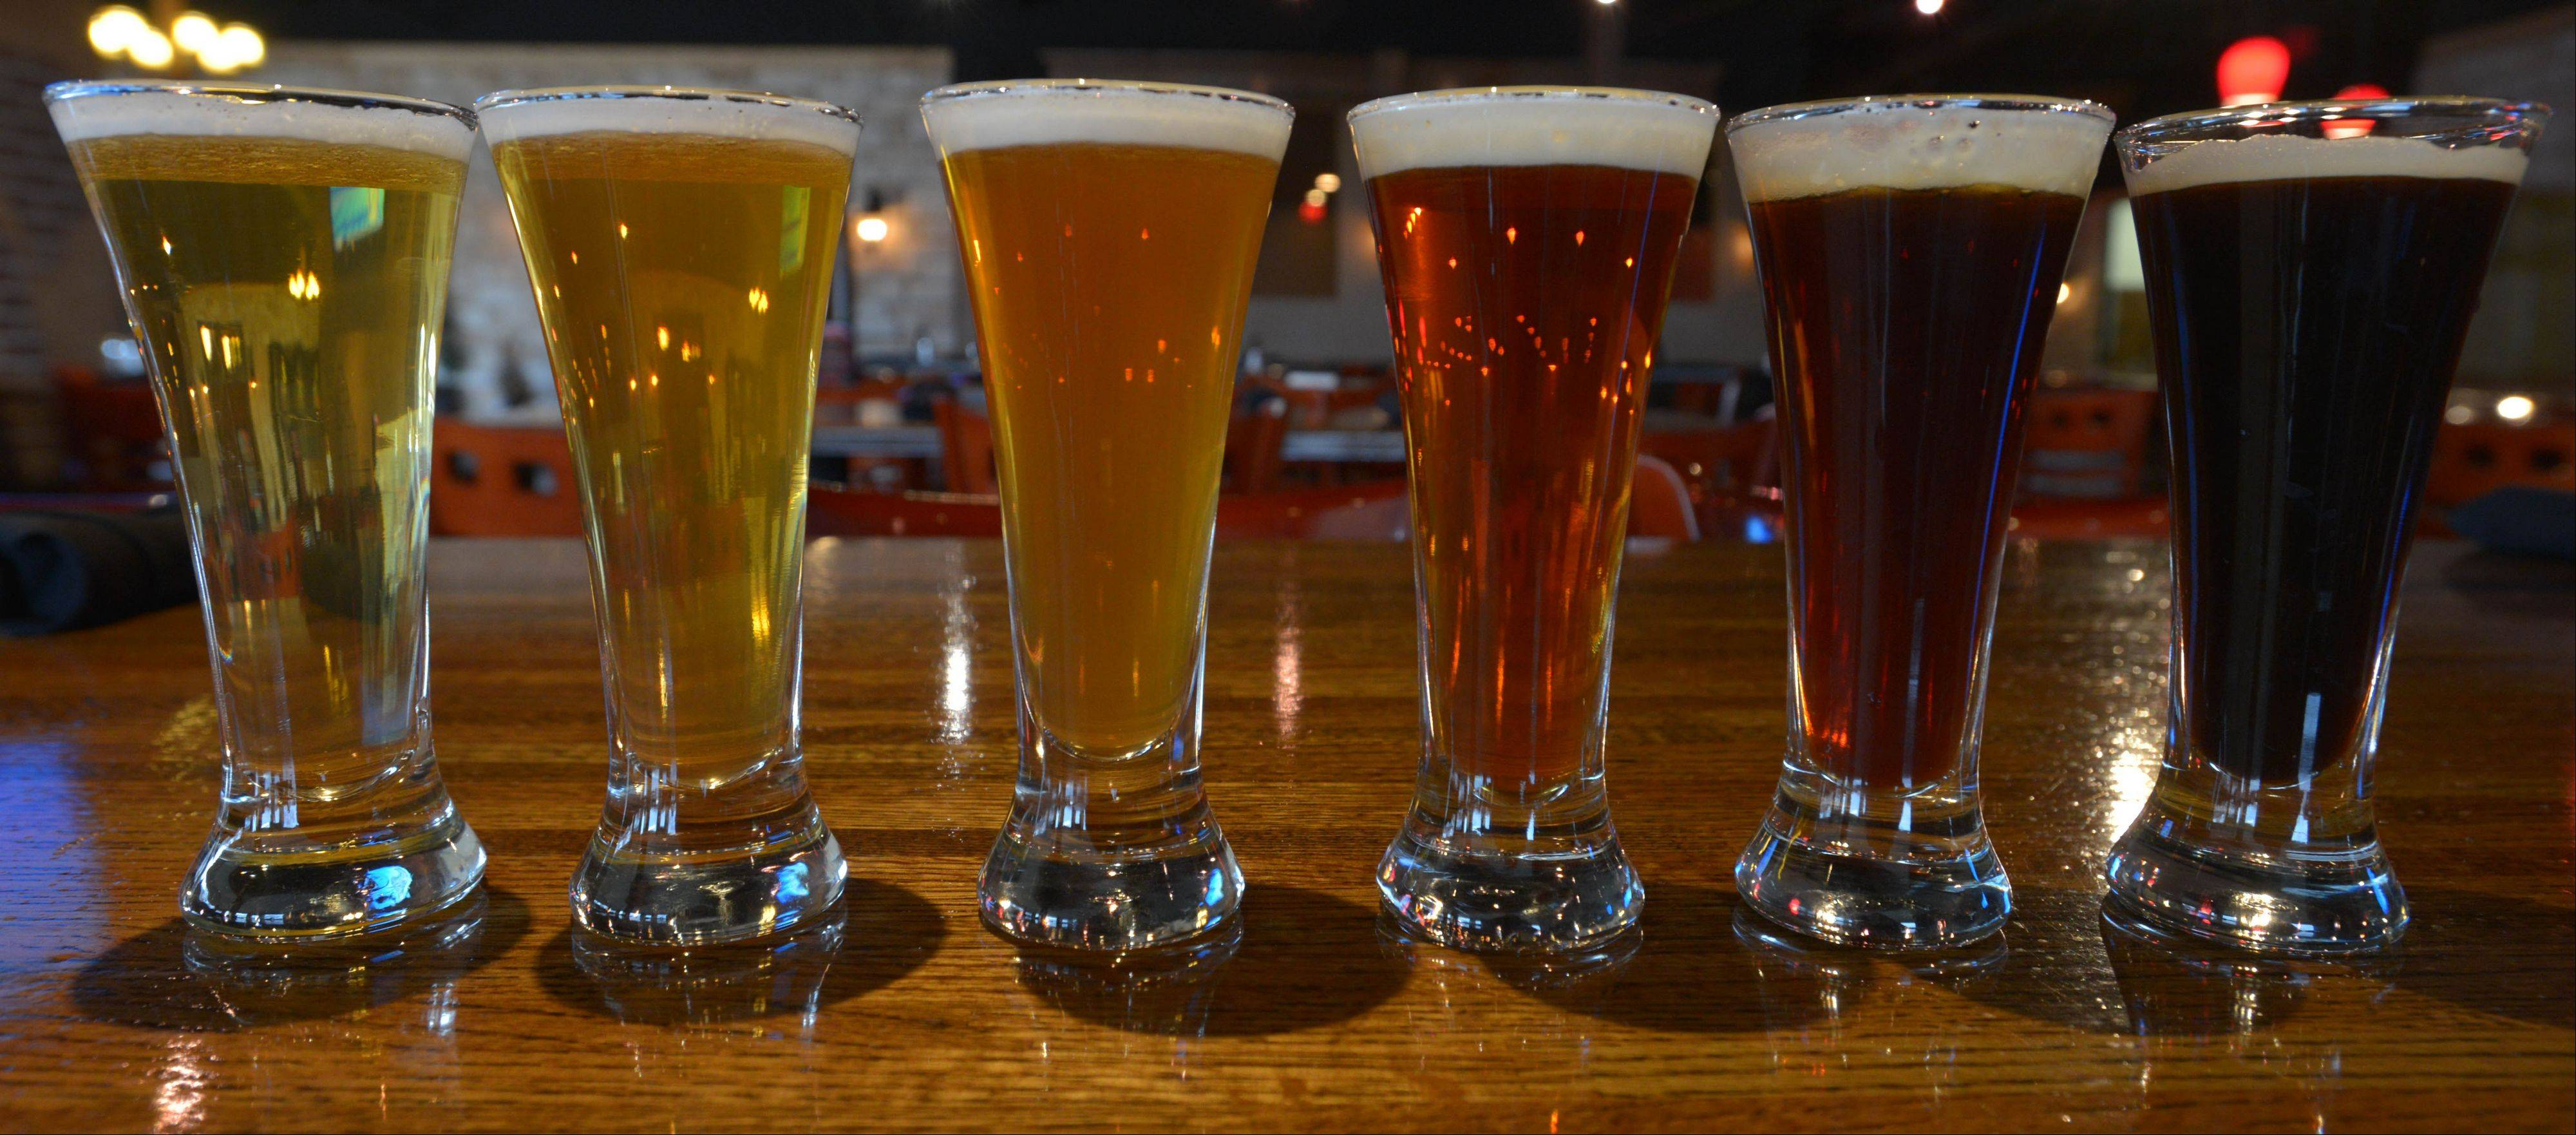 Hopvine offers diners a chance to sample a variety of its house-made beers.